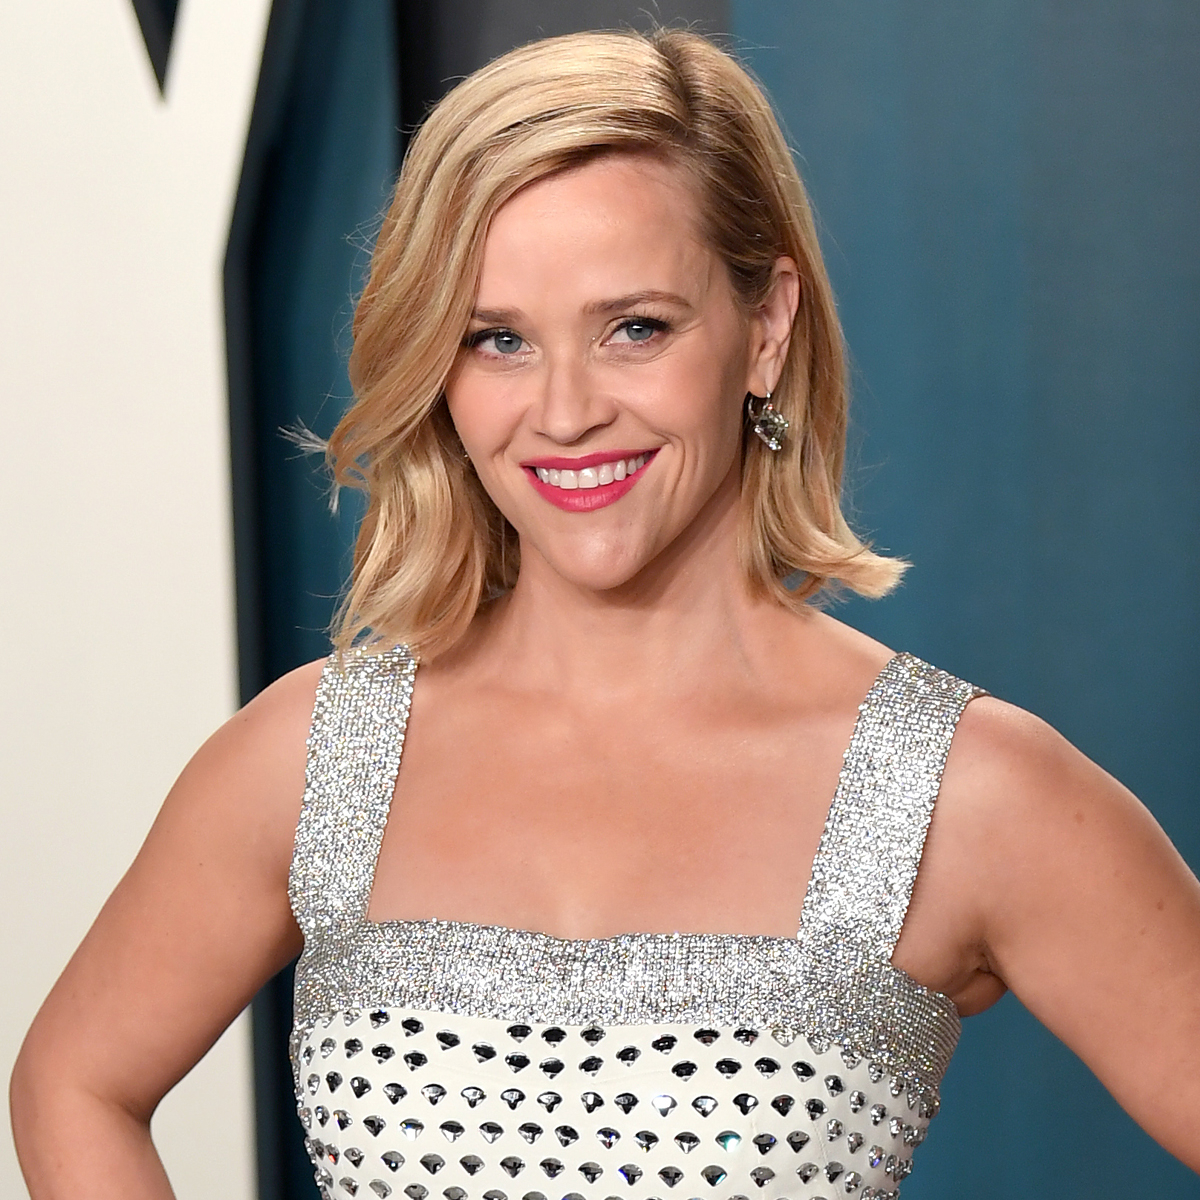 You'll Never Believe These Fascinating Facts About Reese Witherspoon From 10 Things You Don't Know